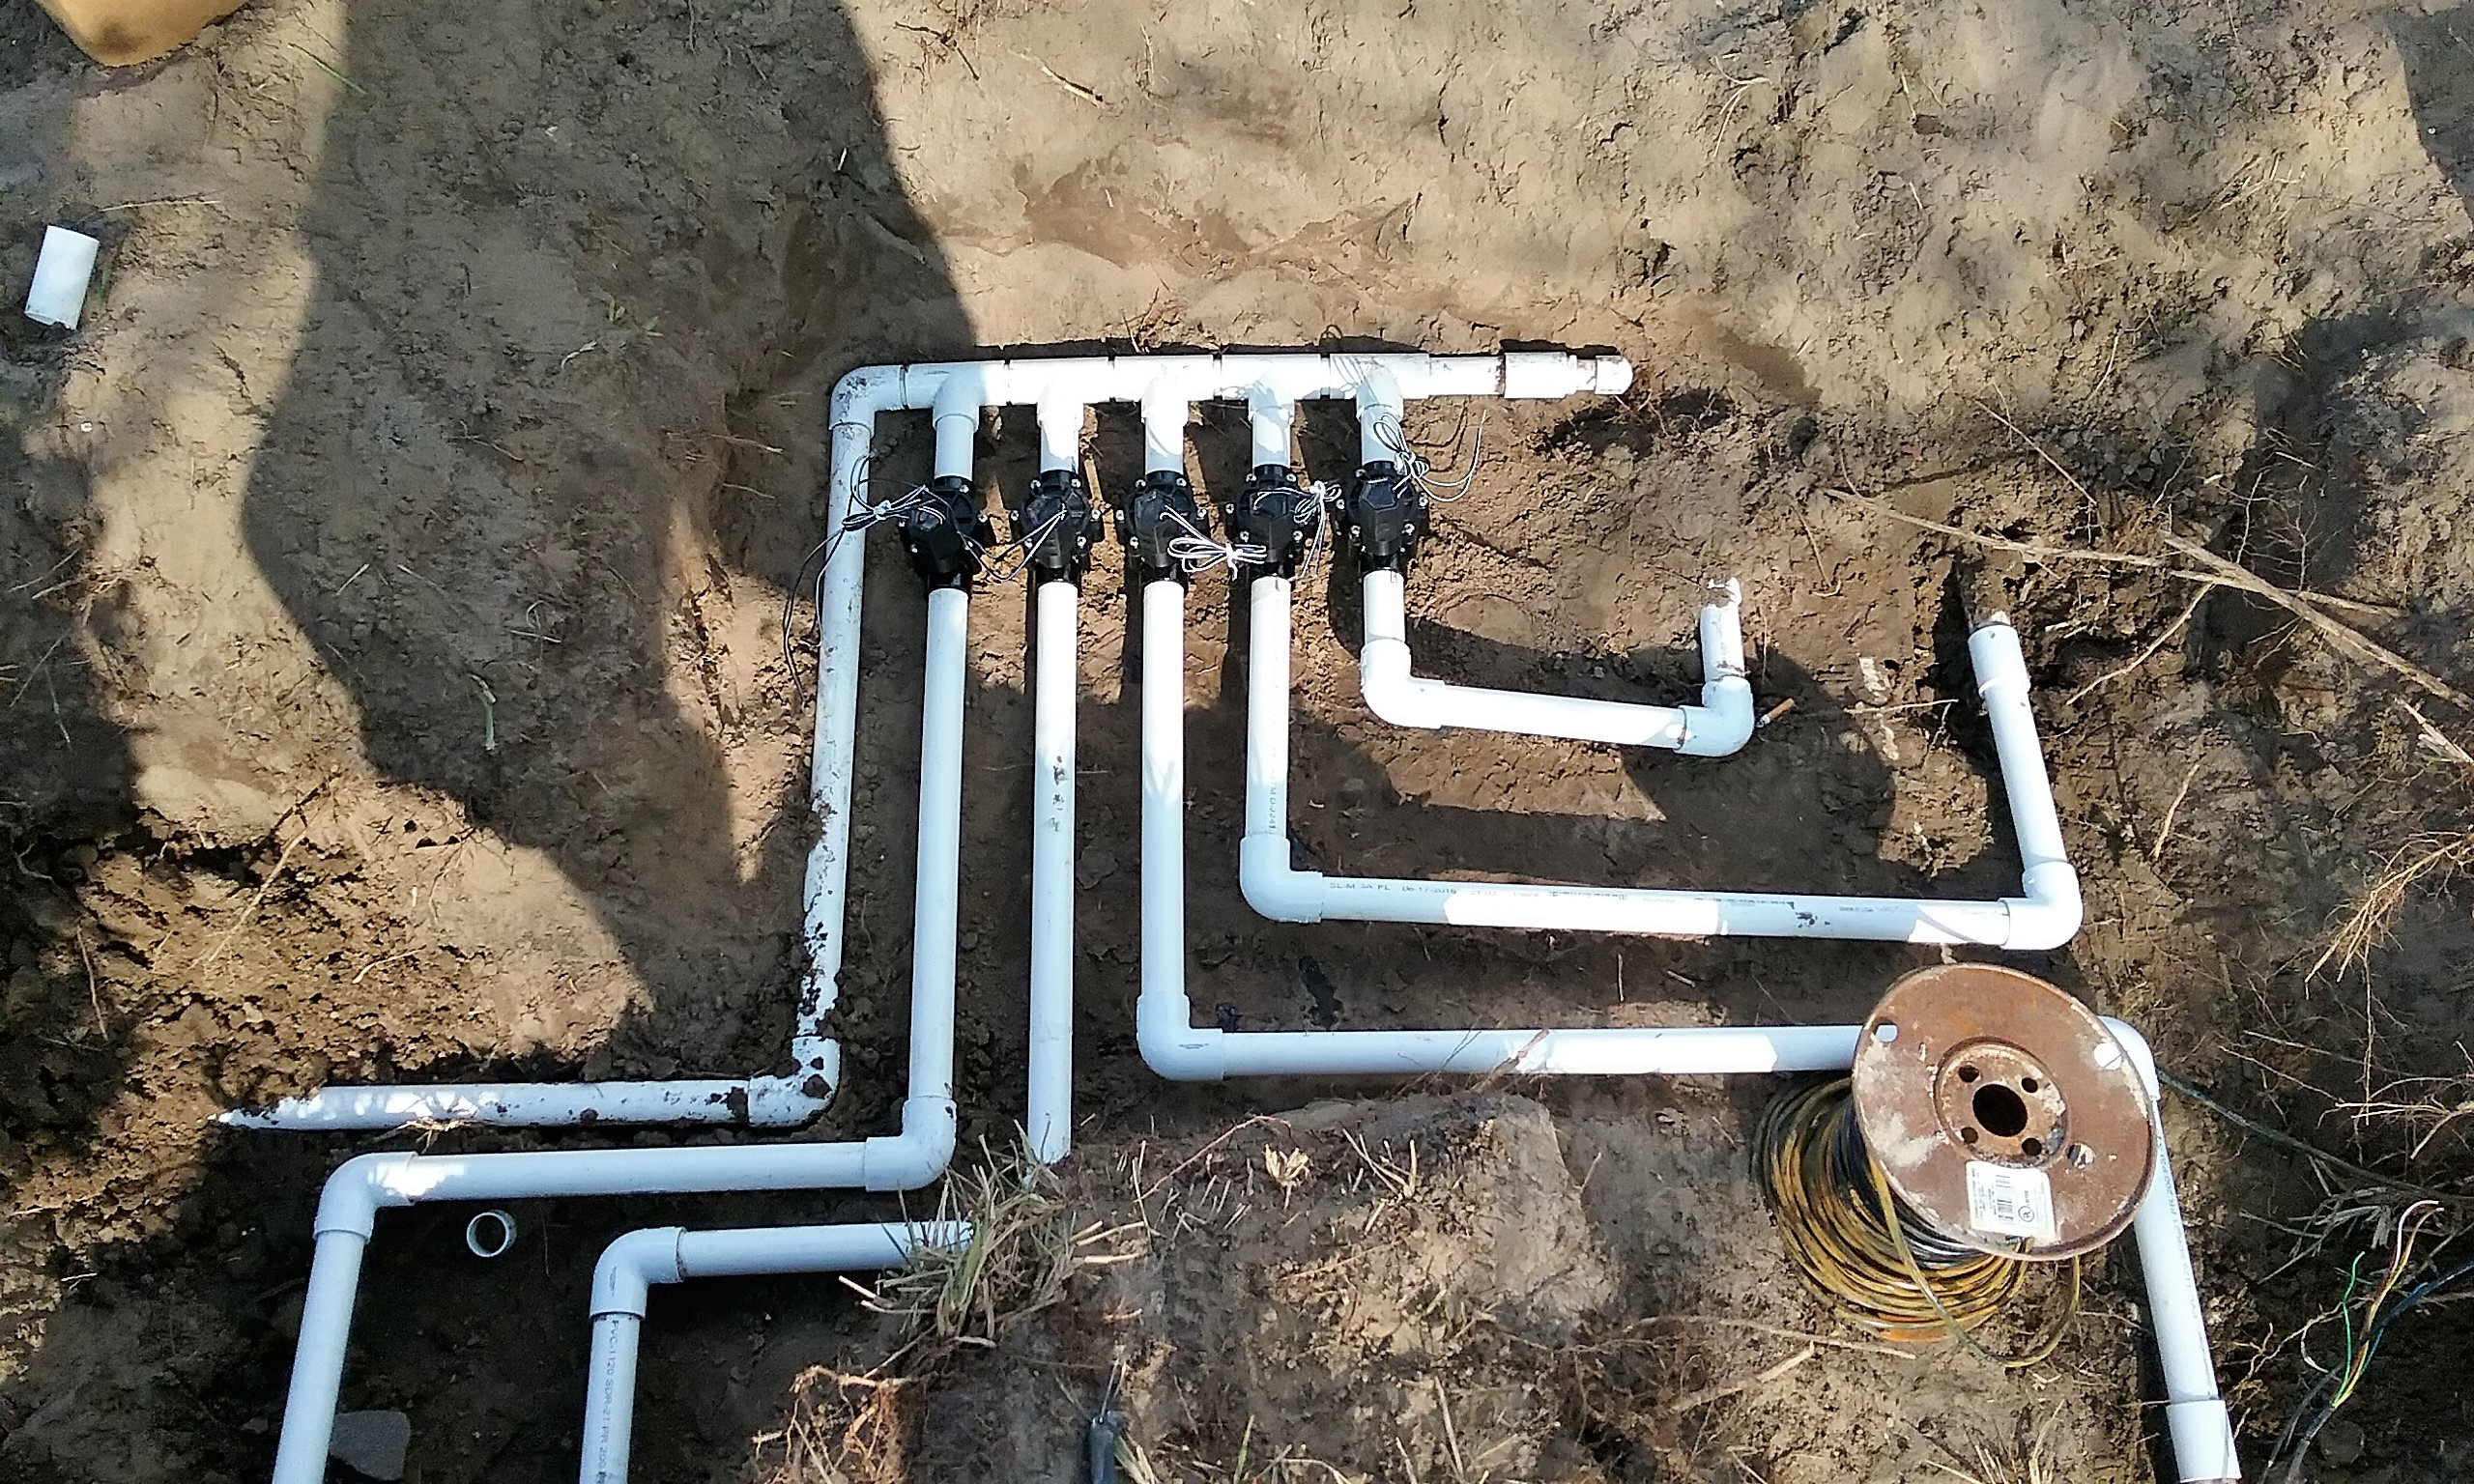 Sprinkler System Repair Service : Lawn sprinkler repair wesley chapel fl free estimates work